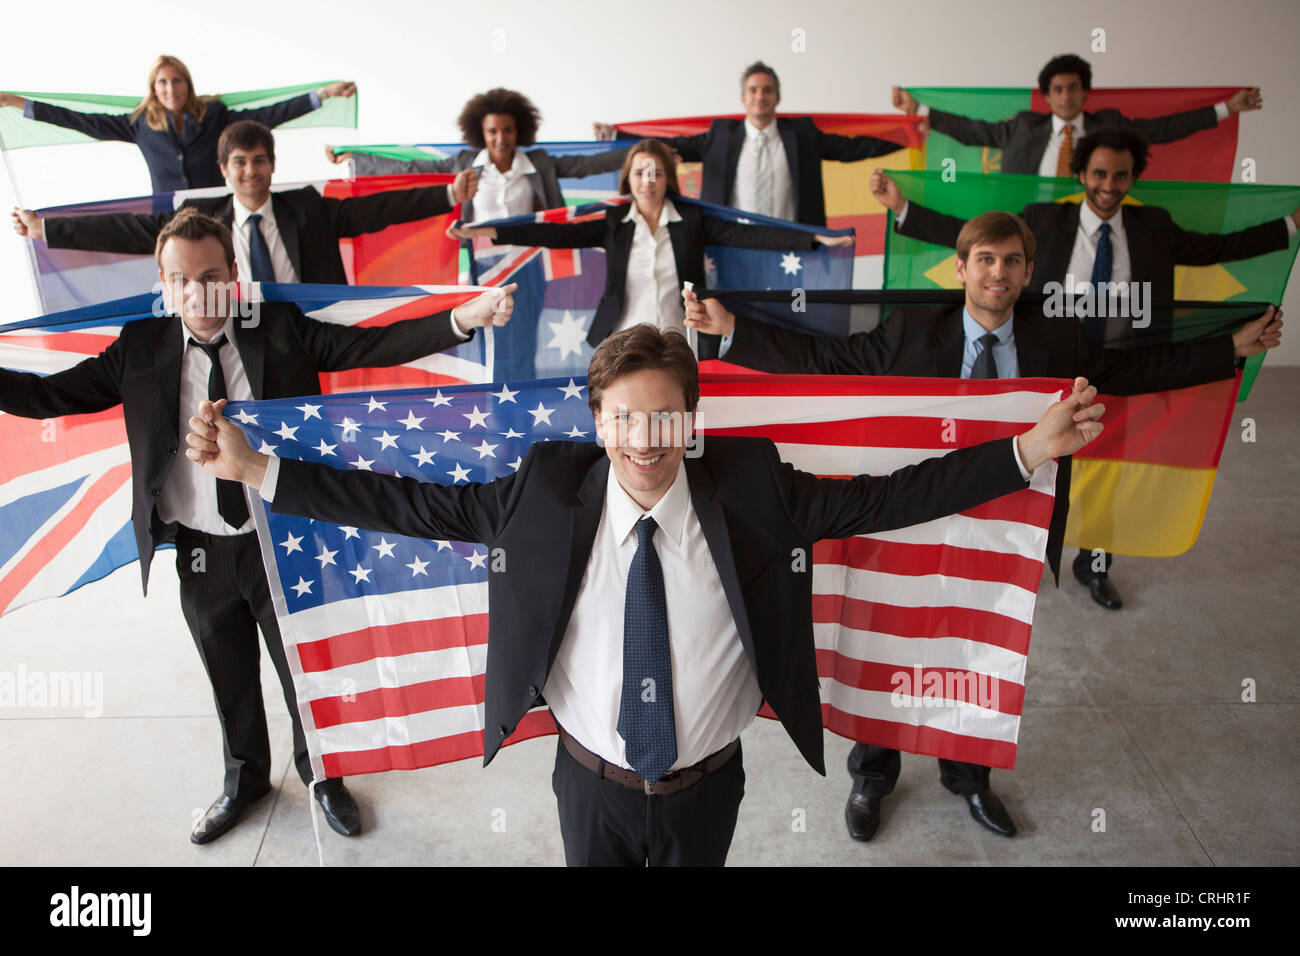 Nations vie for shares of global business - Stock Image